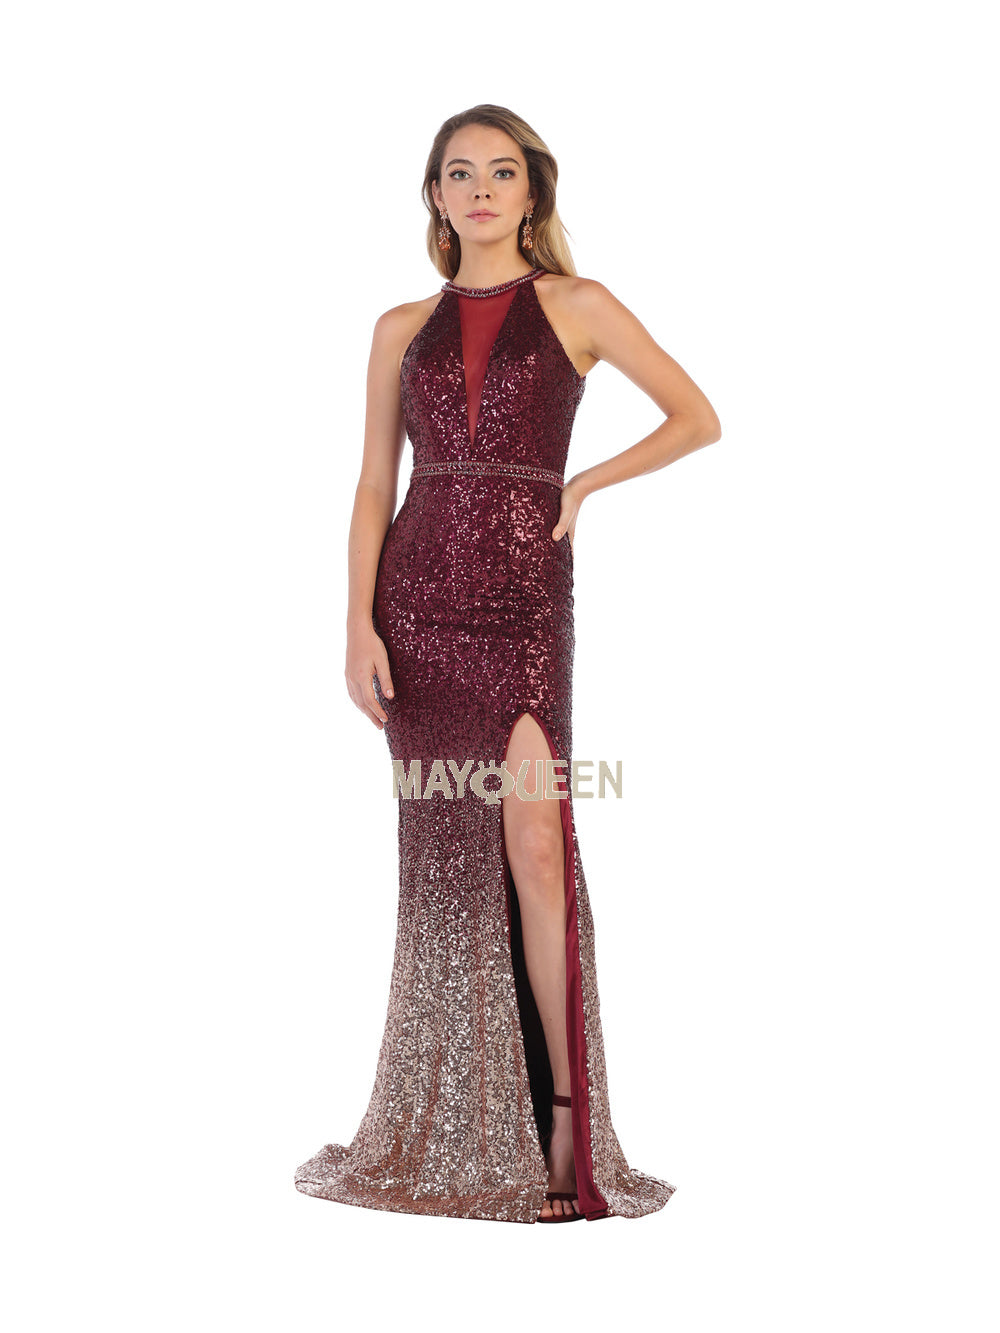 MQ 7673 - Fit & Flare Ombre Sequin Gown with high Leg slit - Diggz Prom